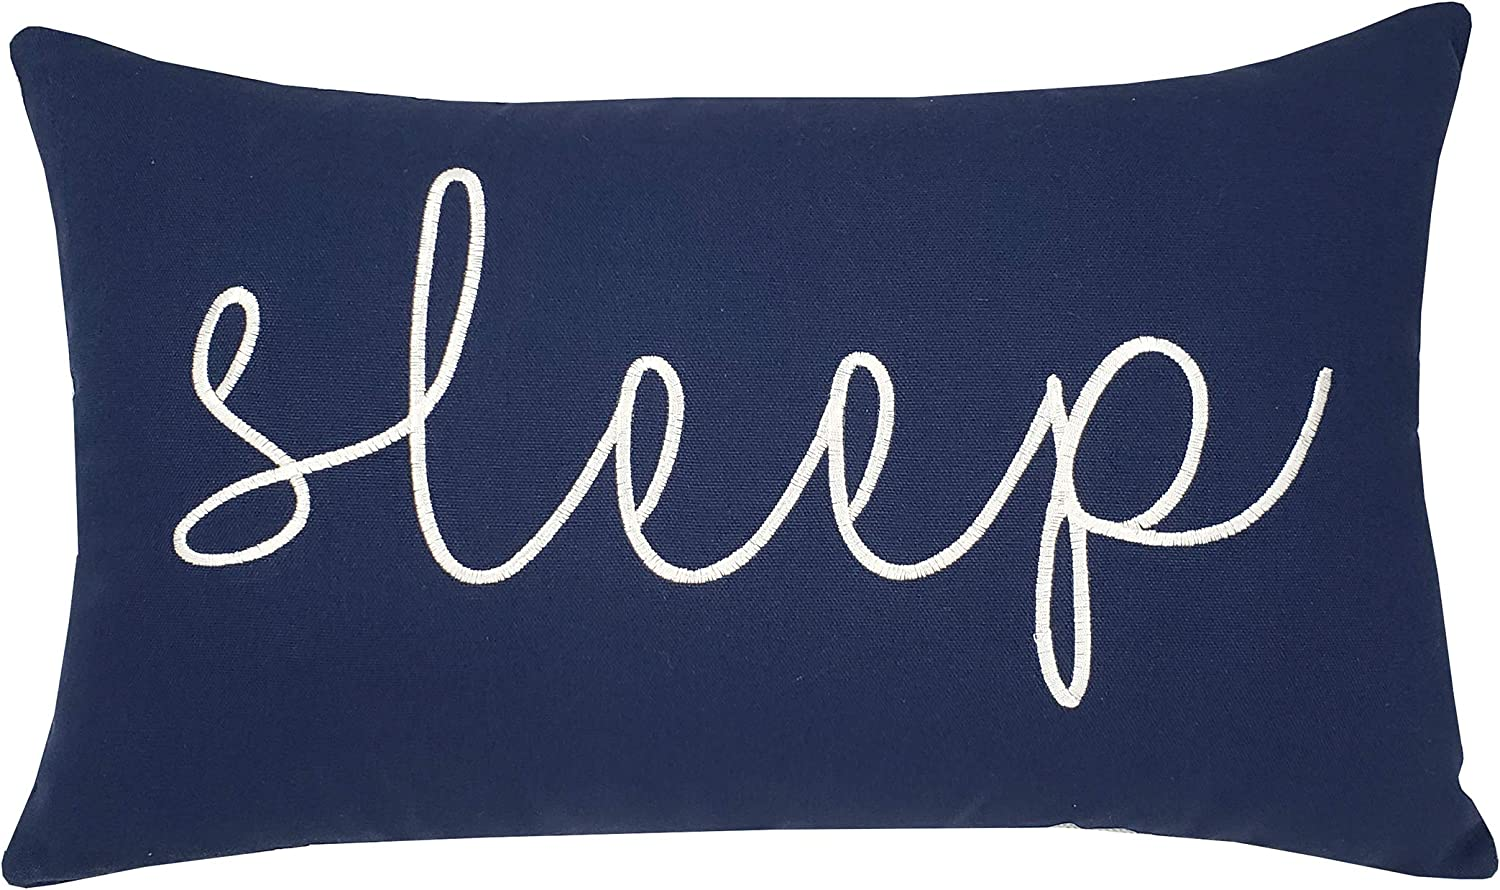 "EURASIA DECOR DecorHouzz Sleep Sentiment Embroidered Pillow Cover Cushion Cover Pillow Cases Throw Pillow Decorative Pillow Wedding Birthday 12""x20"" (Navy)"